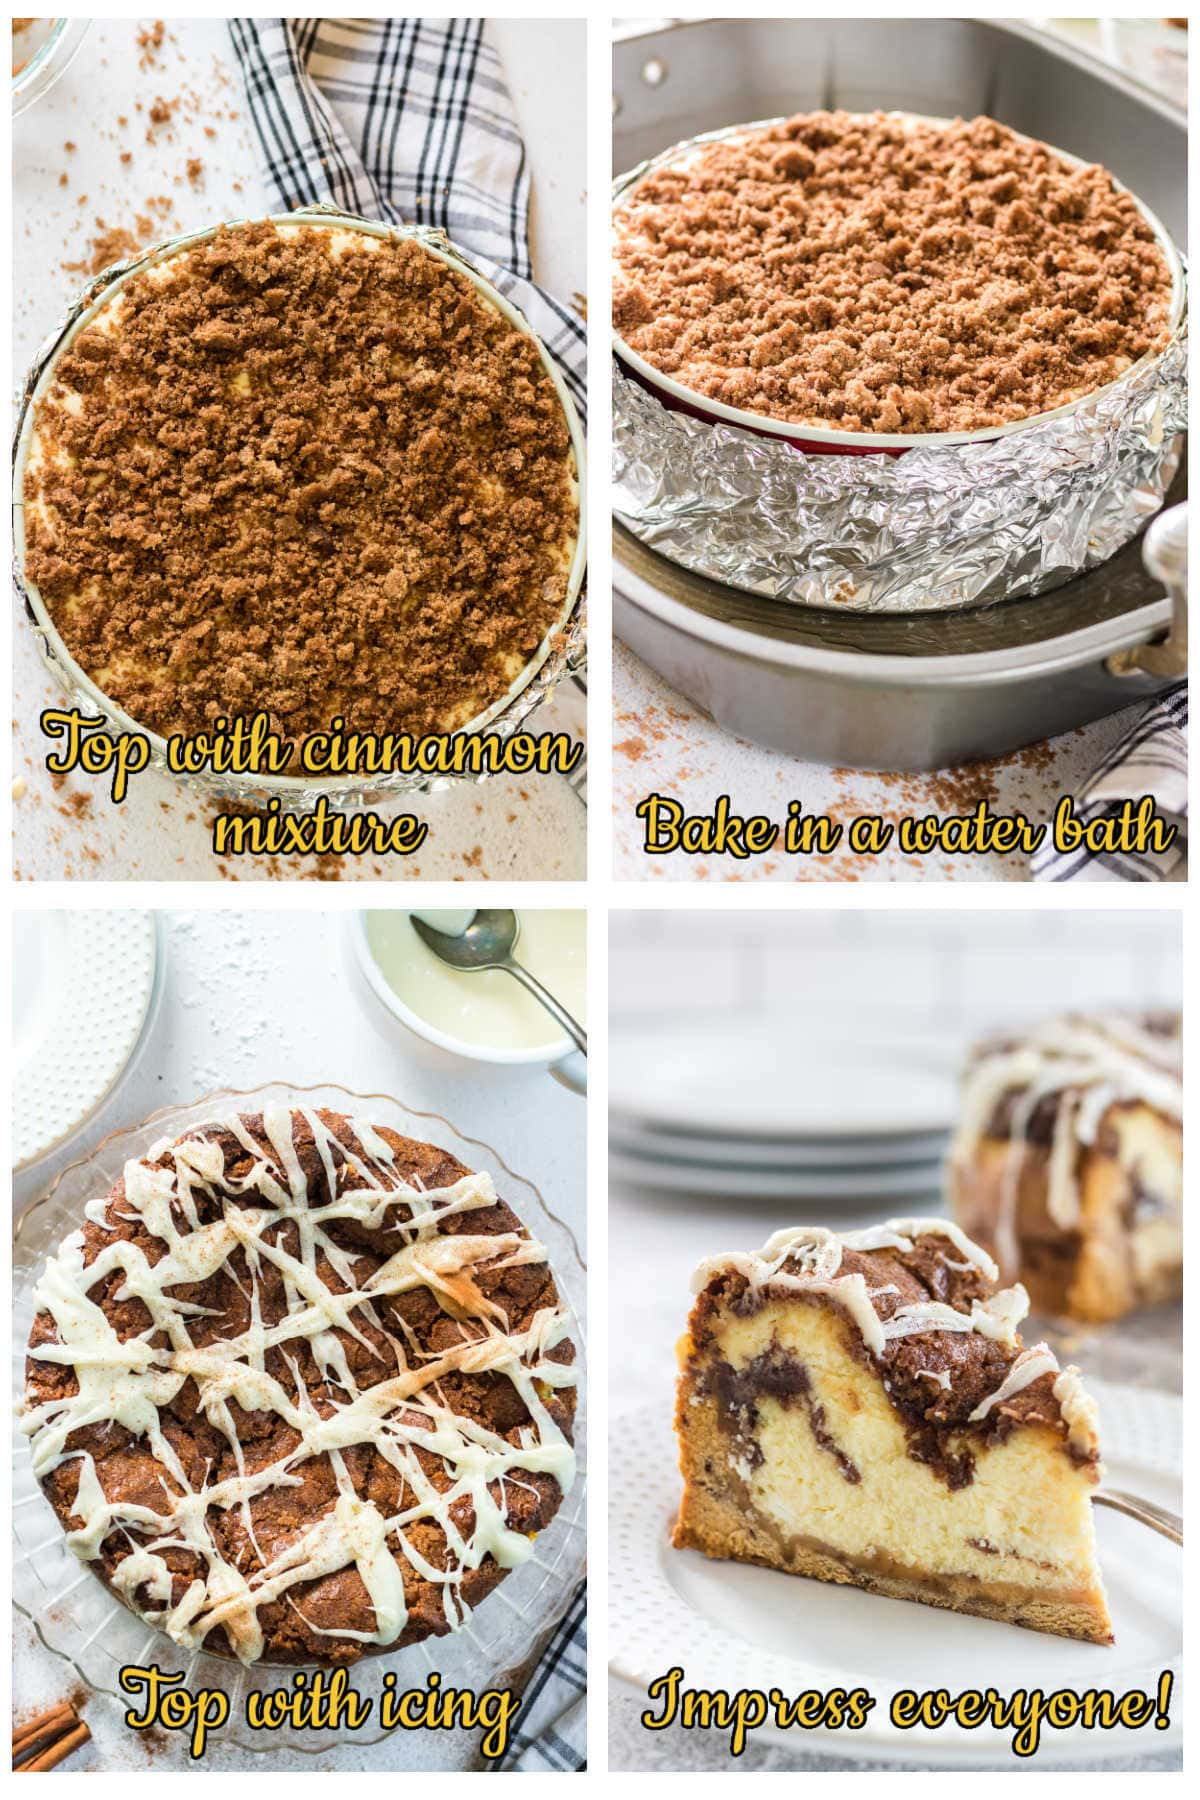 Step by step images for baking this recipe.